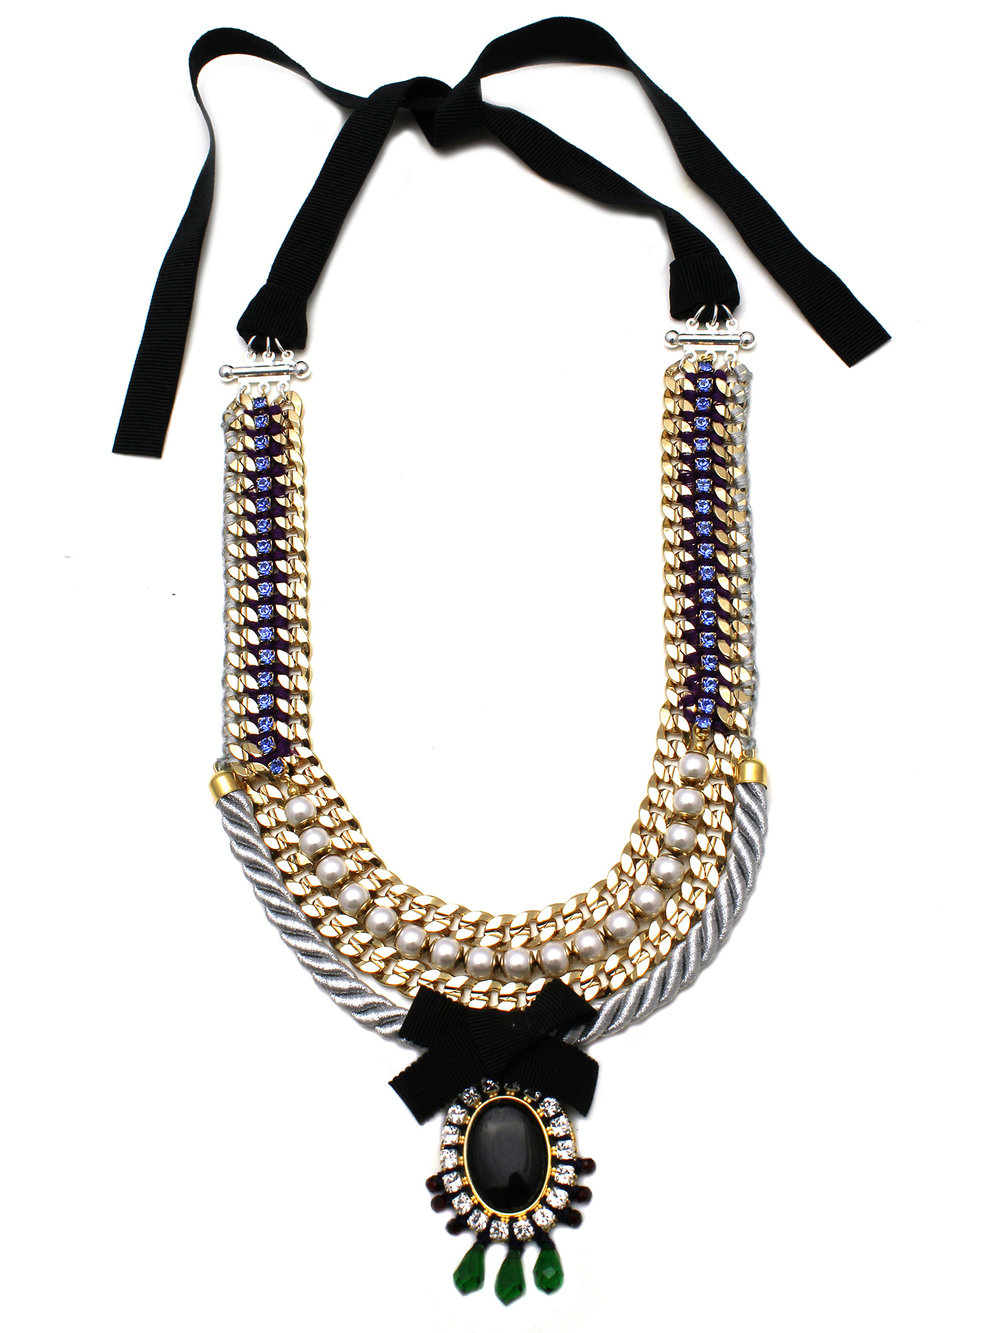 070 - Sapphire & Pearl Cord Necklace.jpg